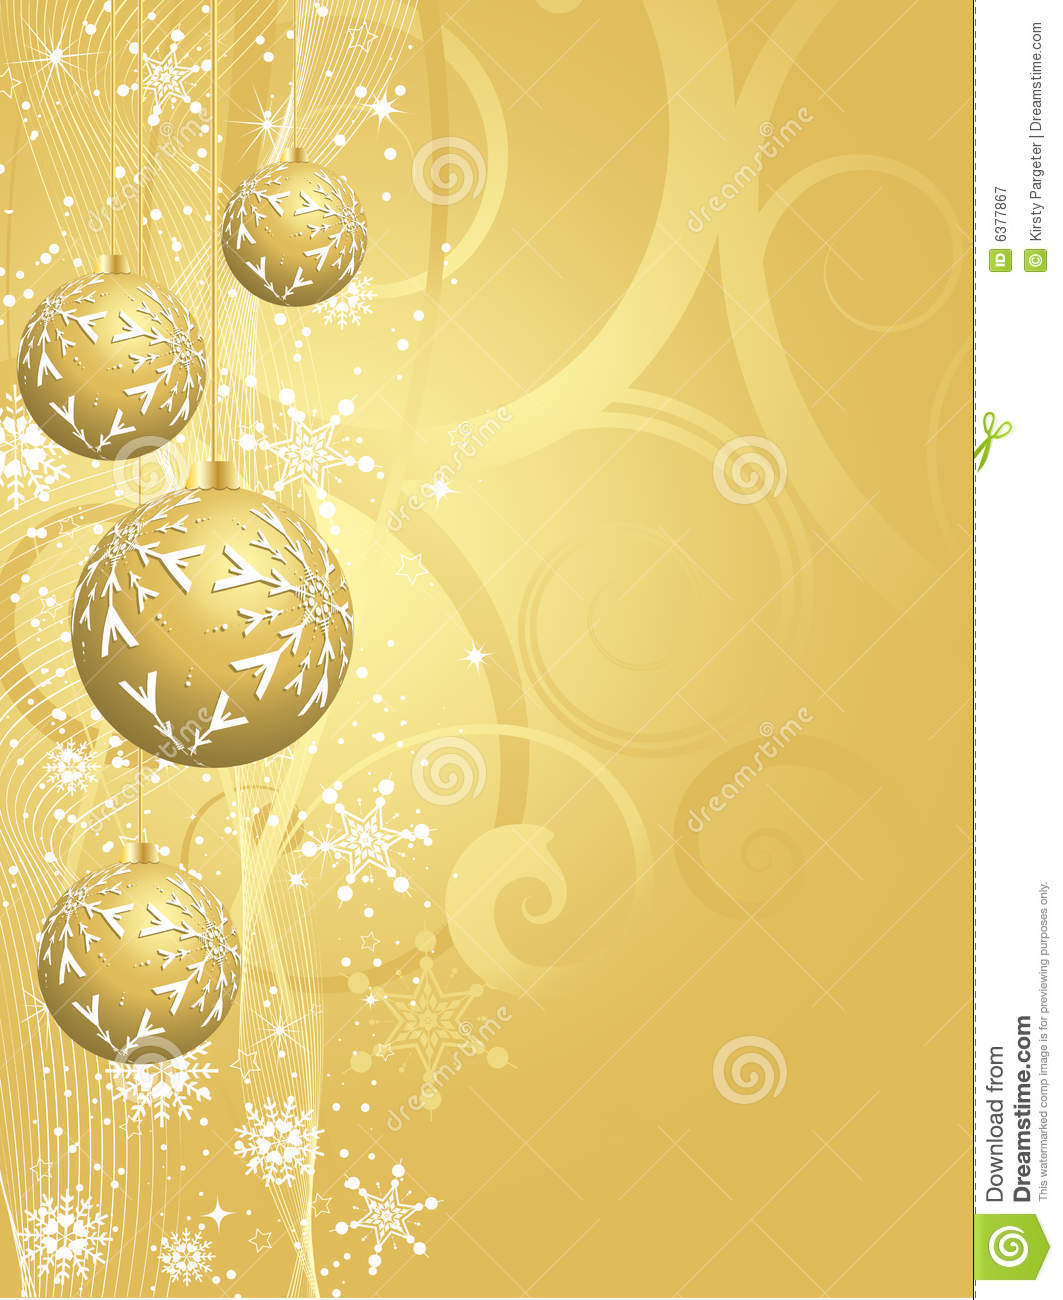 gold christmas background stock vector. illustration of season - 6377867